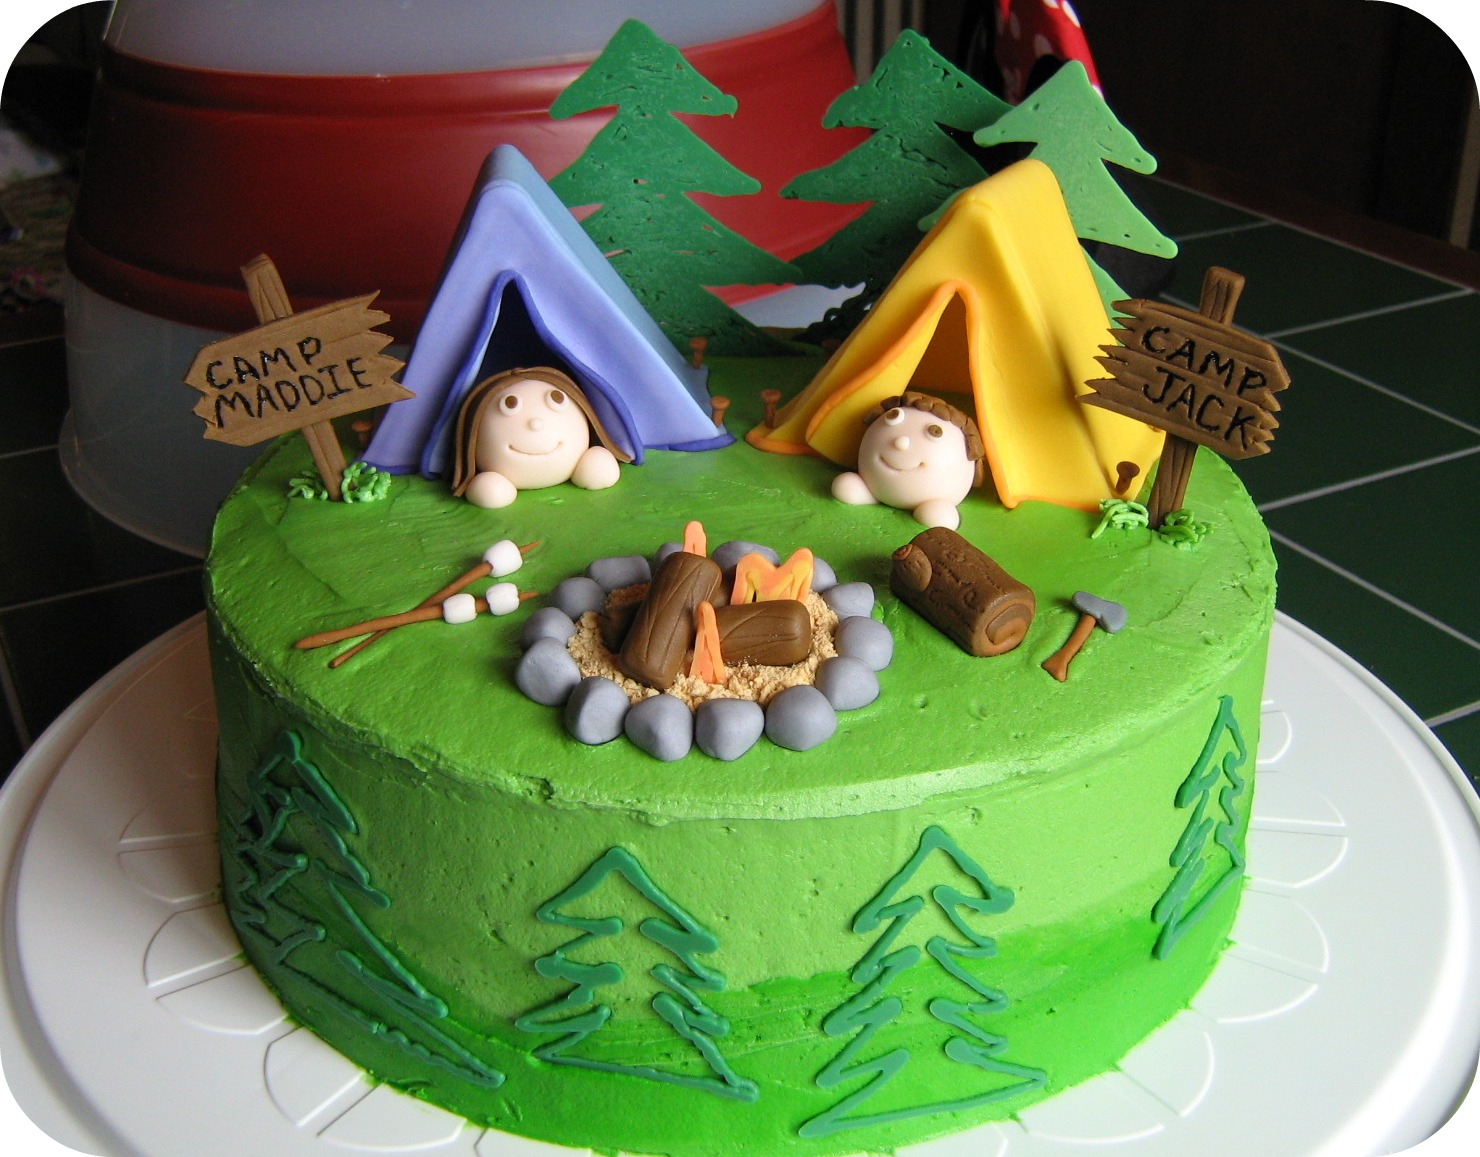 Cake Themed Birthday Party : Fowl Single File: A Cake for a Camping Party Theme